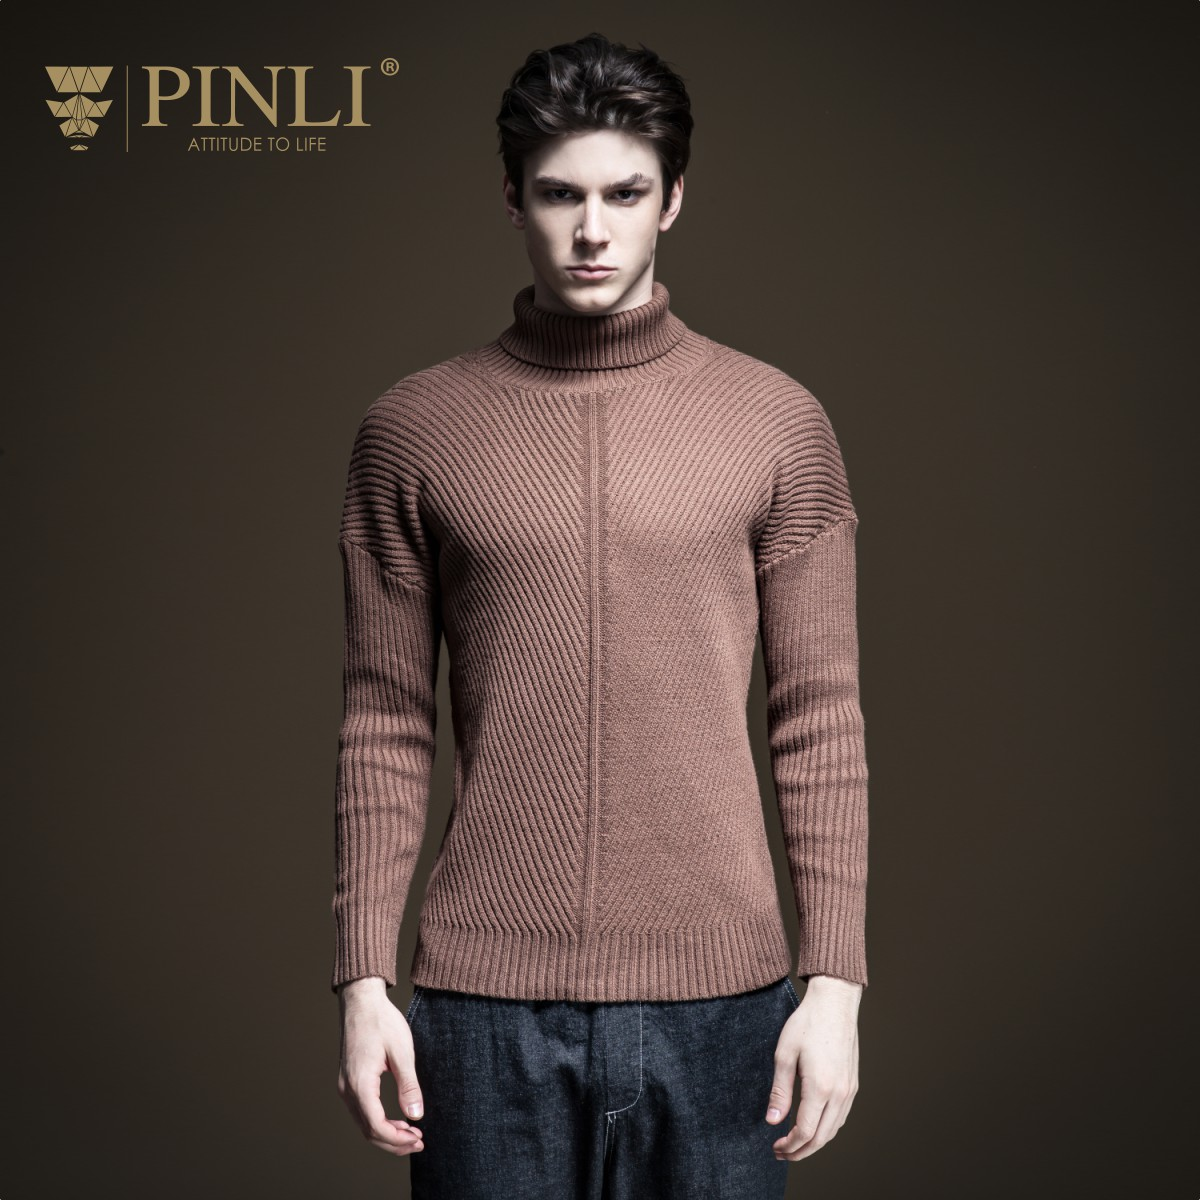 Pinli 2020 Winter New Discount Clearance Turtleneck Solid Pullovers Slim Fashion Warm Casual Men Long Sleeve Sweater Hot Sale